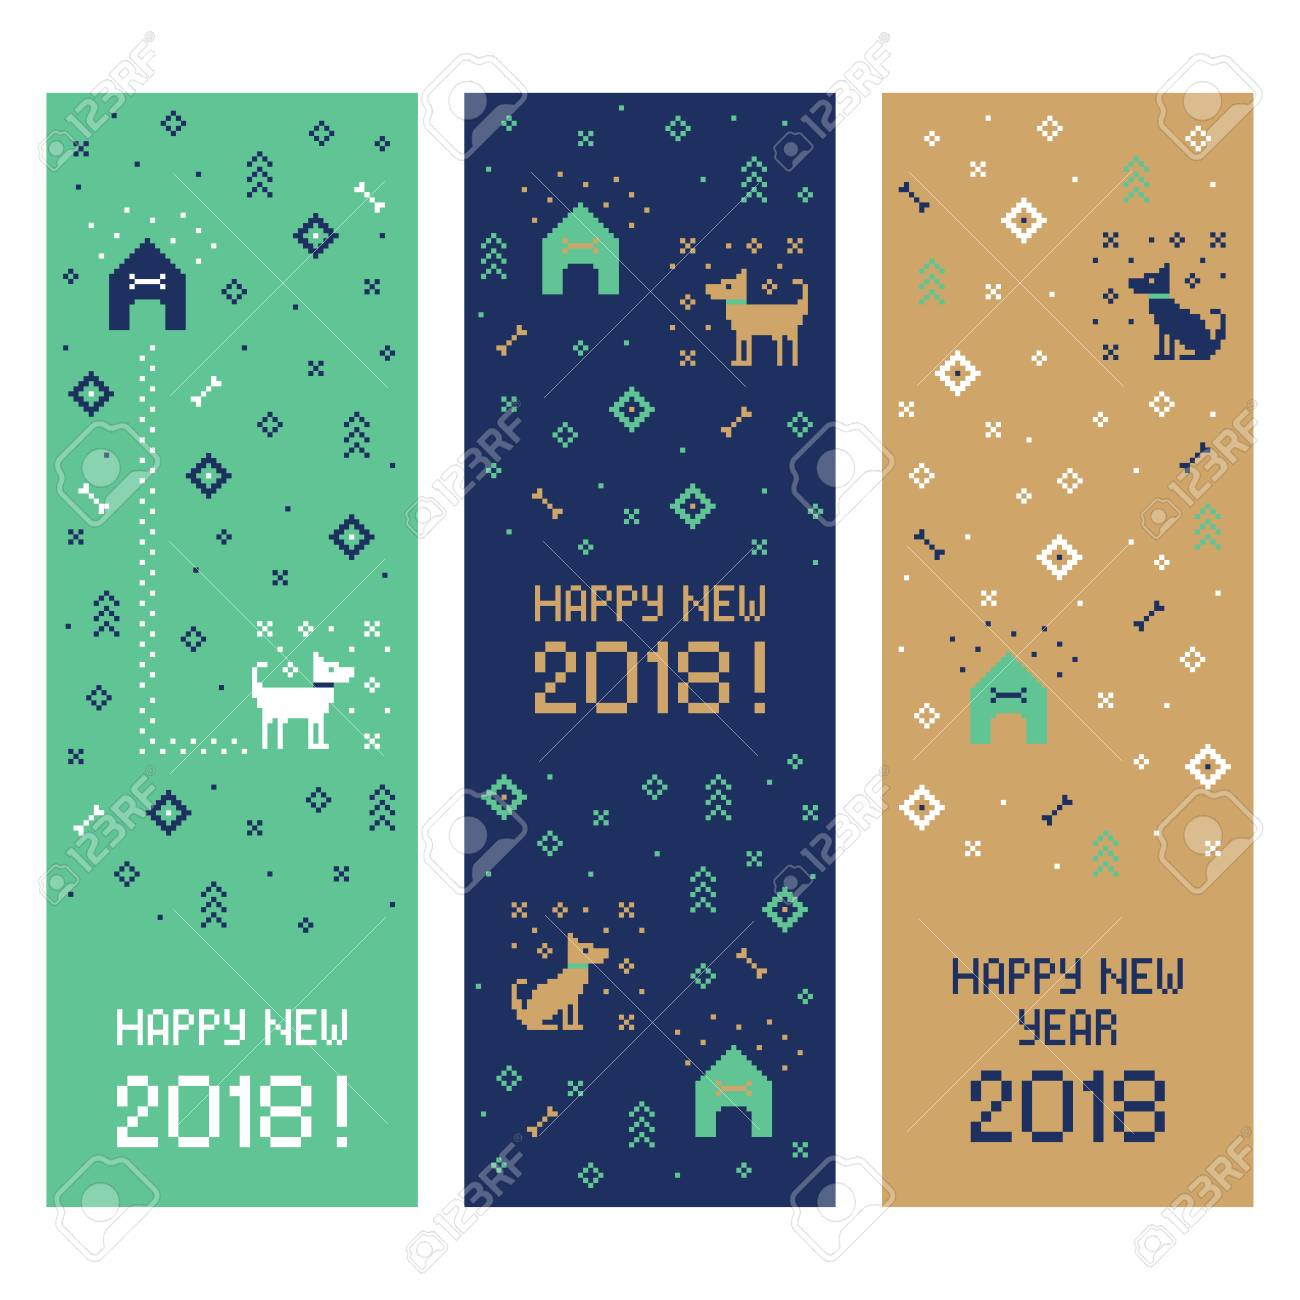 chinese happy new year 2018 cross stitch greeting internet banners set with dog pixel art